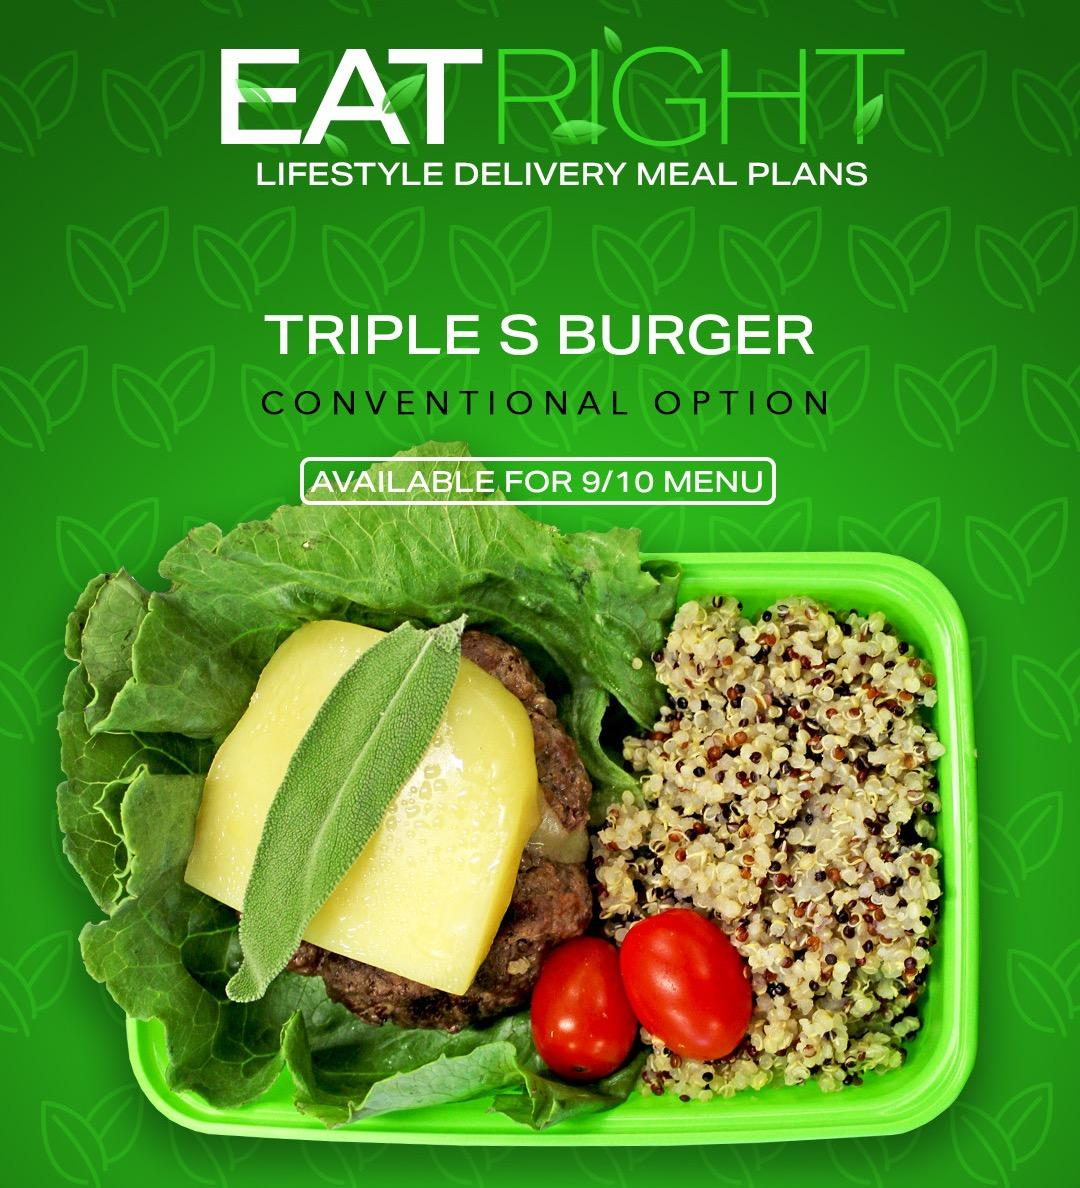 Eat Right Meal Plans image 1